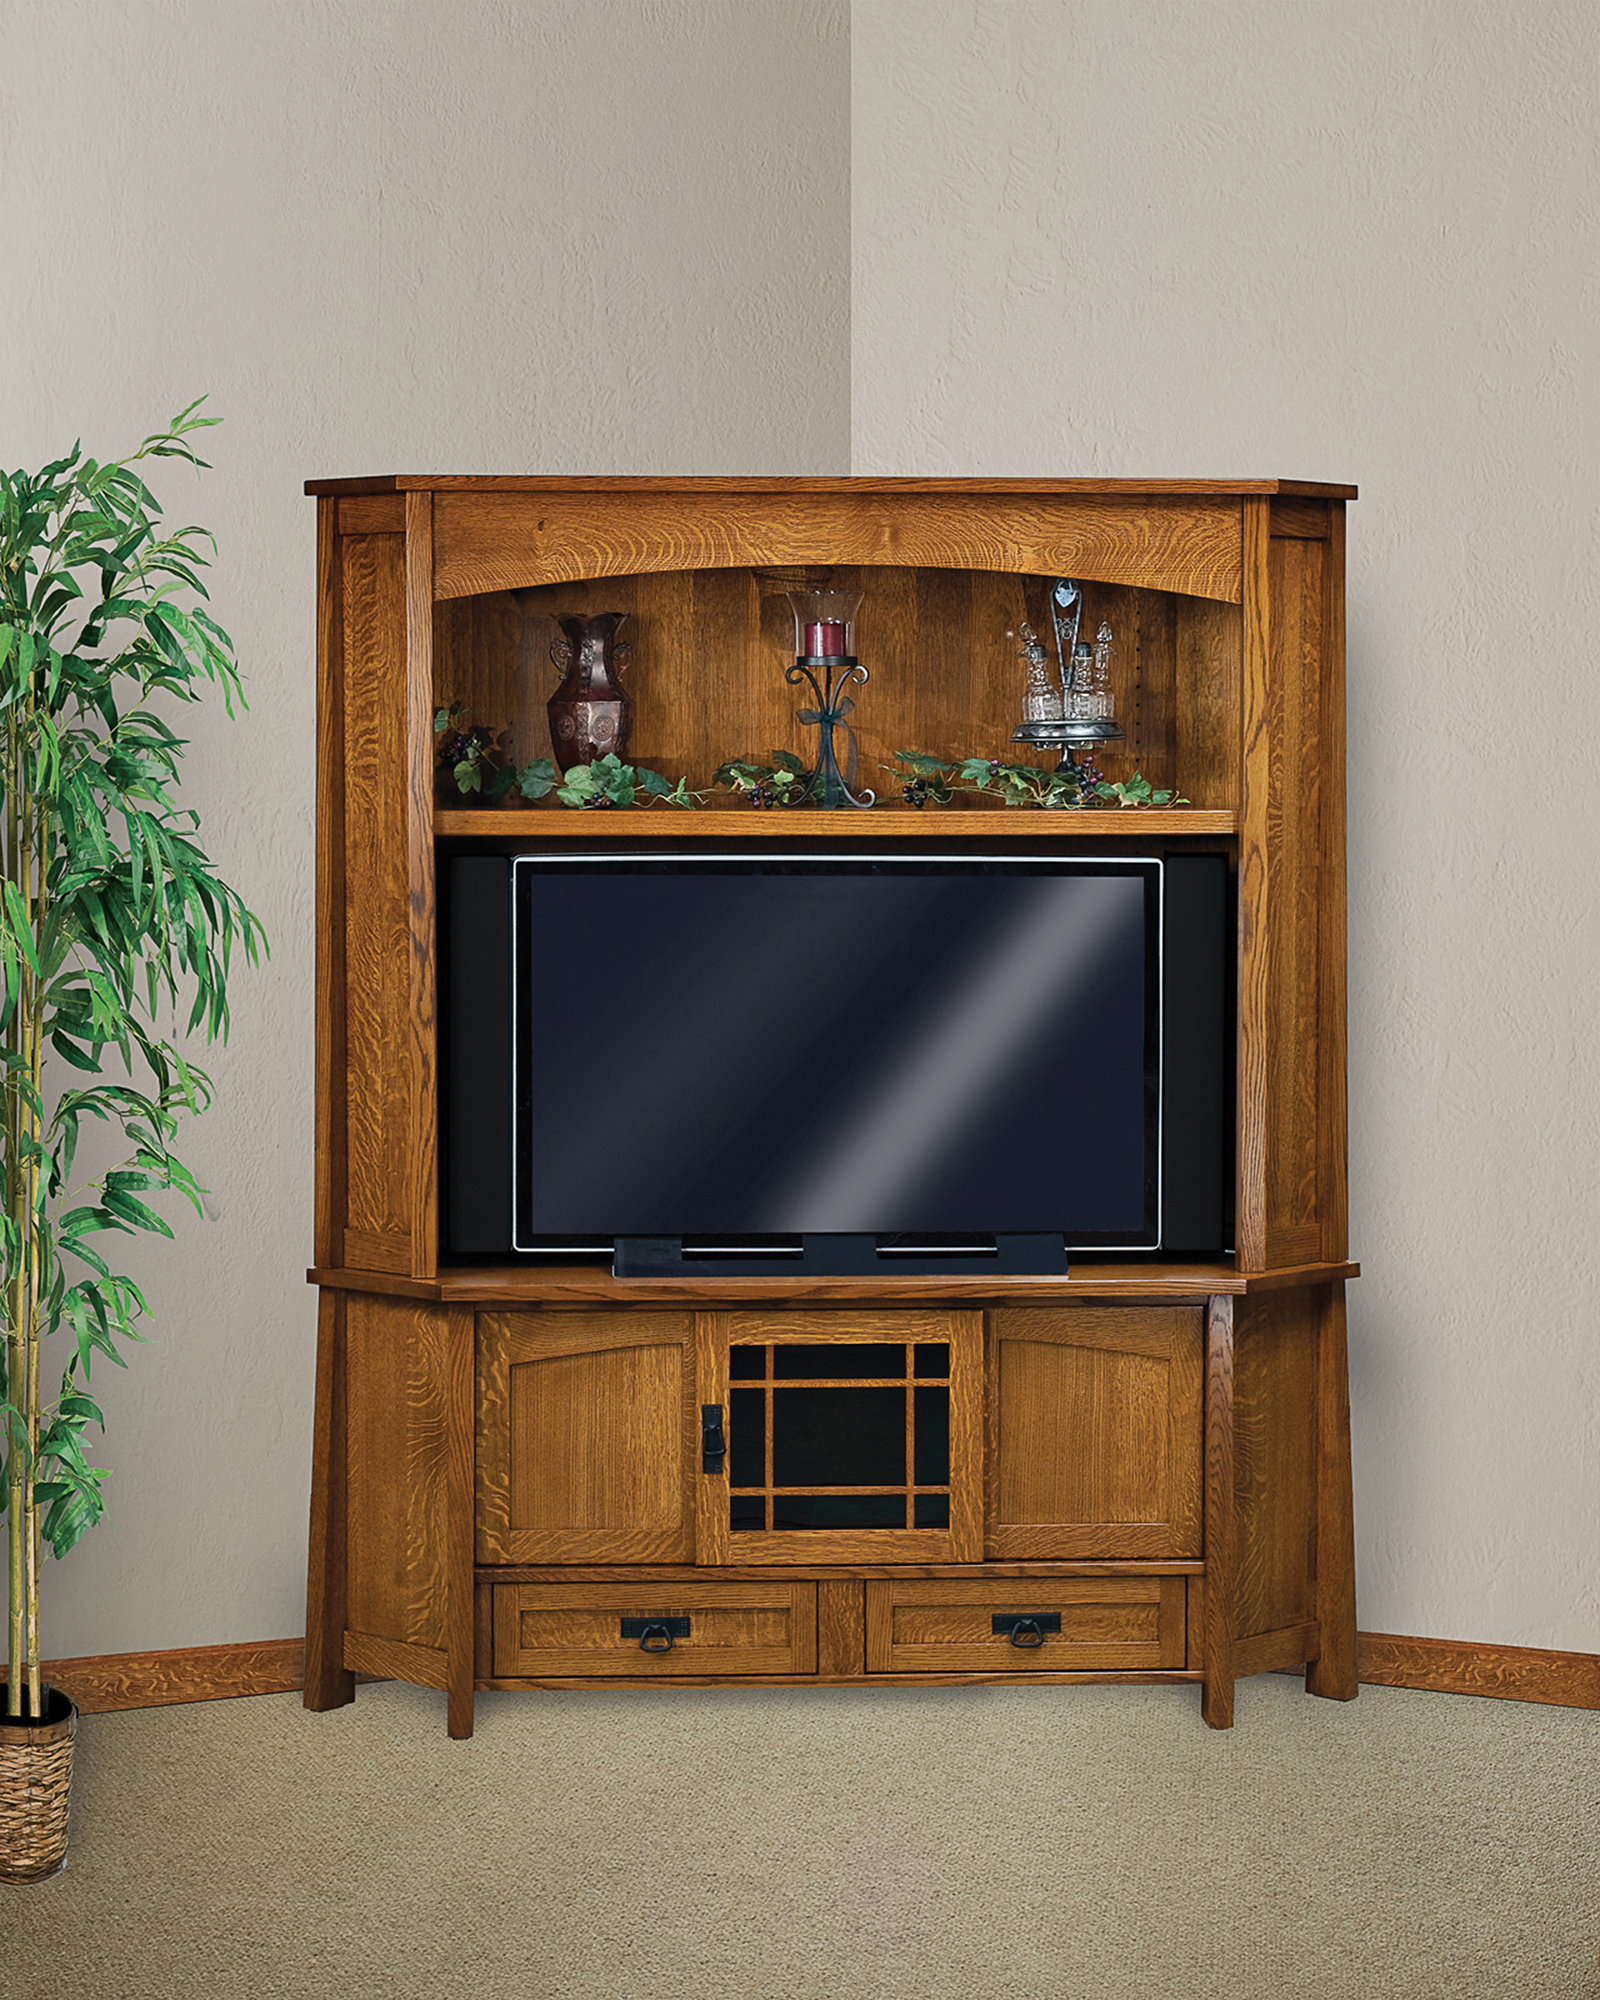 Modesto Corner Consoles Amish Furniture Store Mankato Mn